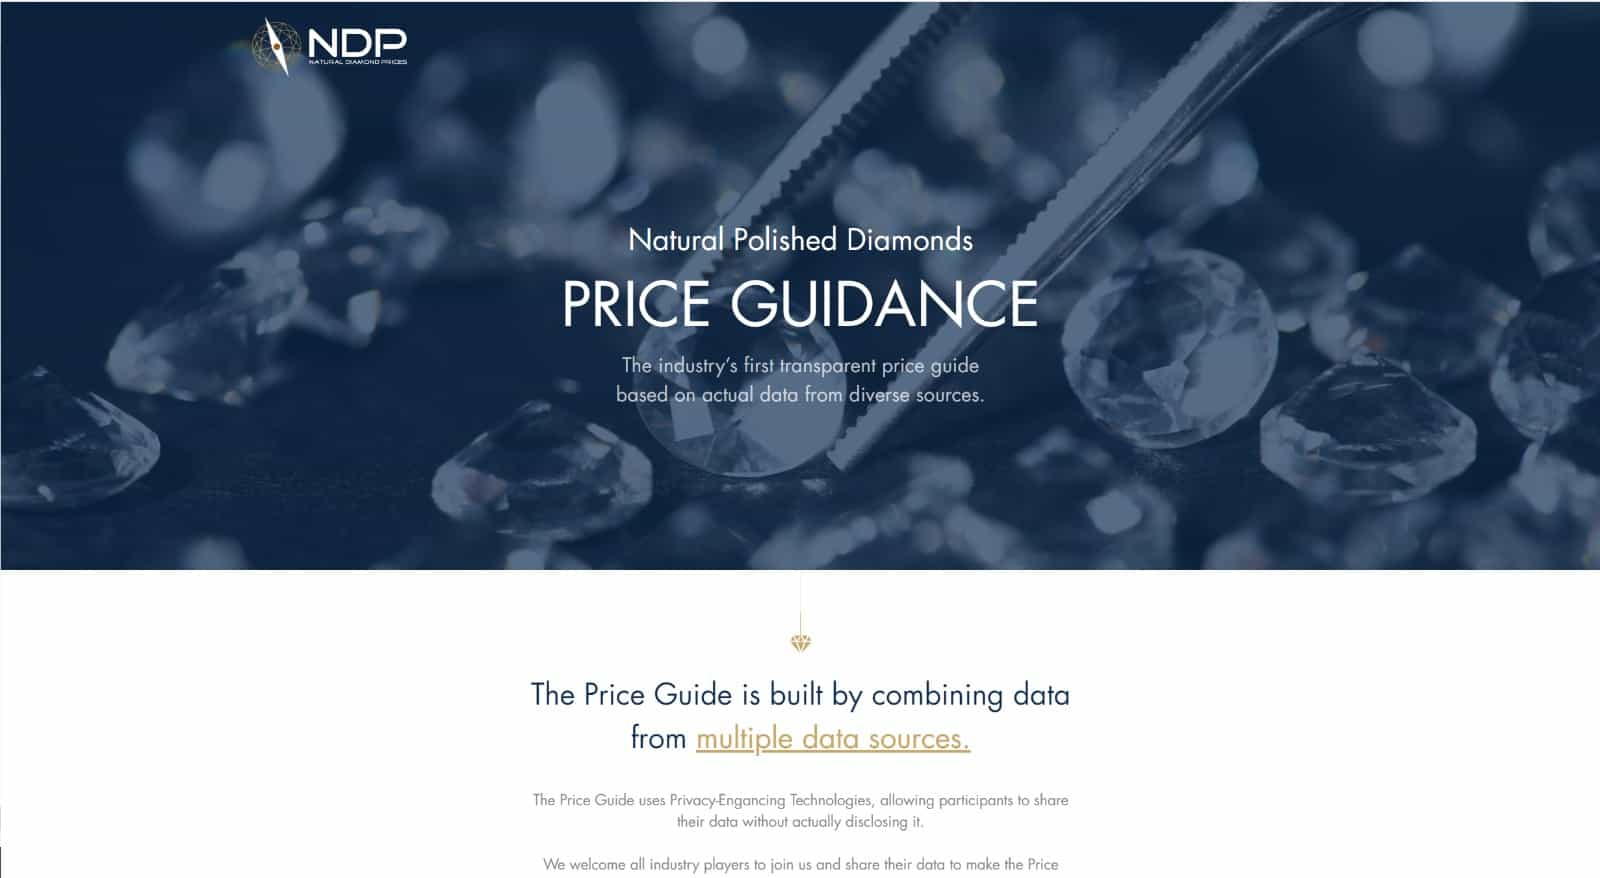 INTERVIEW – UNI Diamonds plan launch transparent diamond price guide by end-September